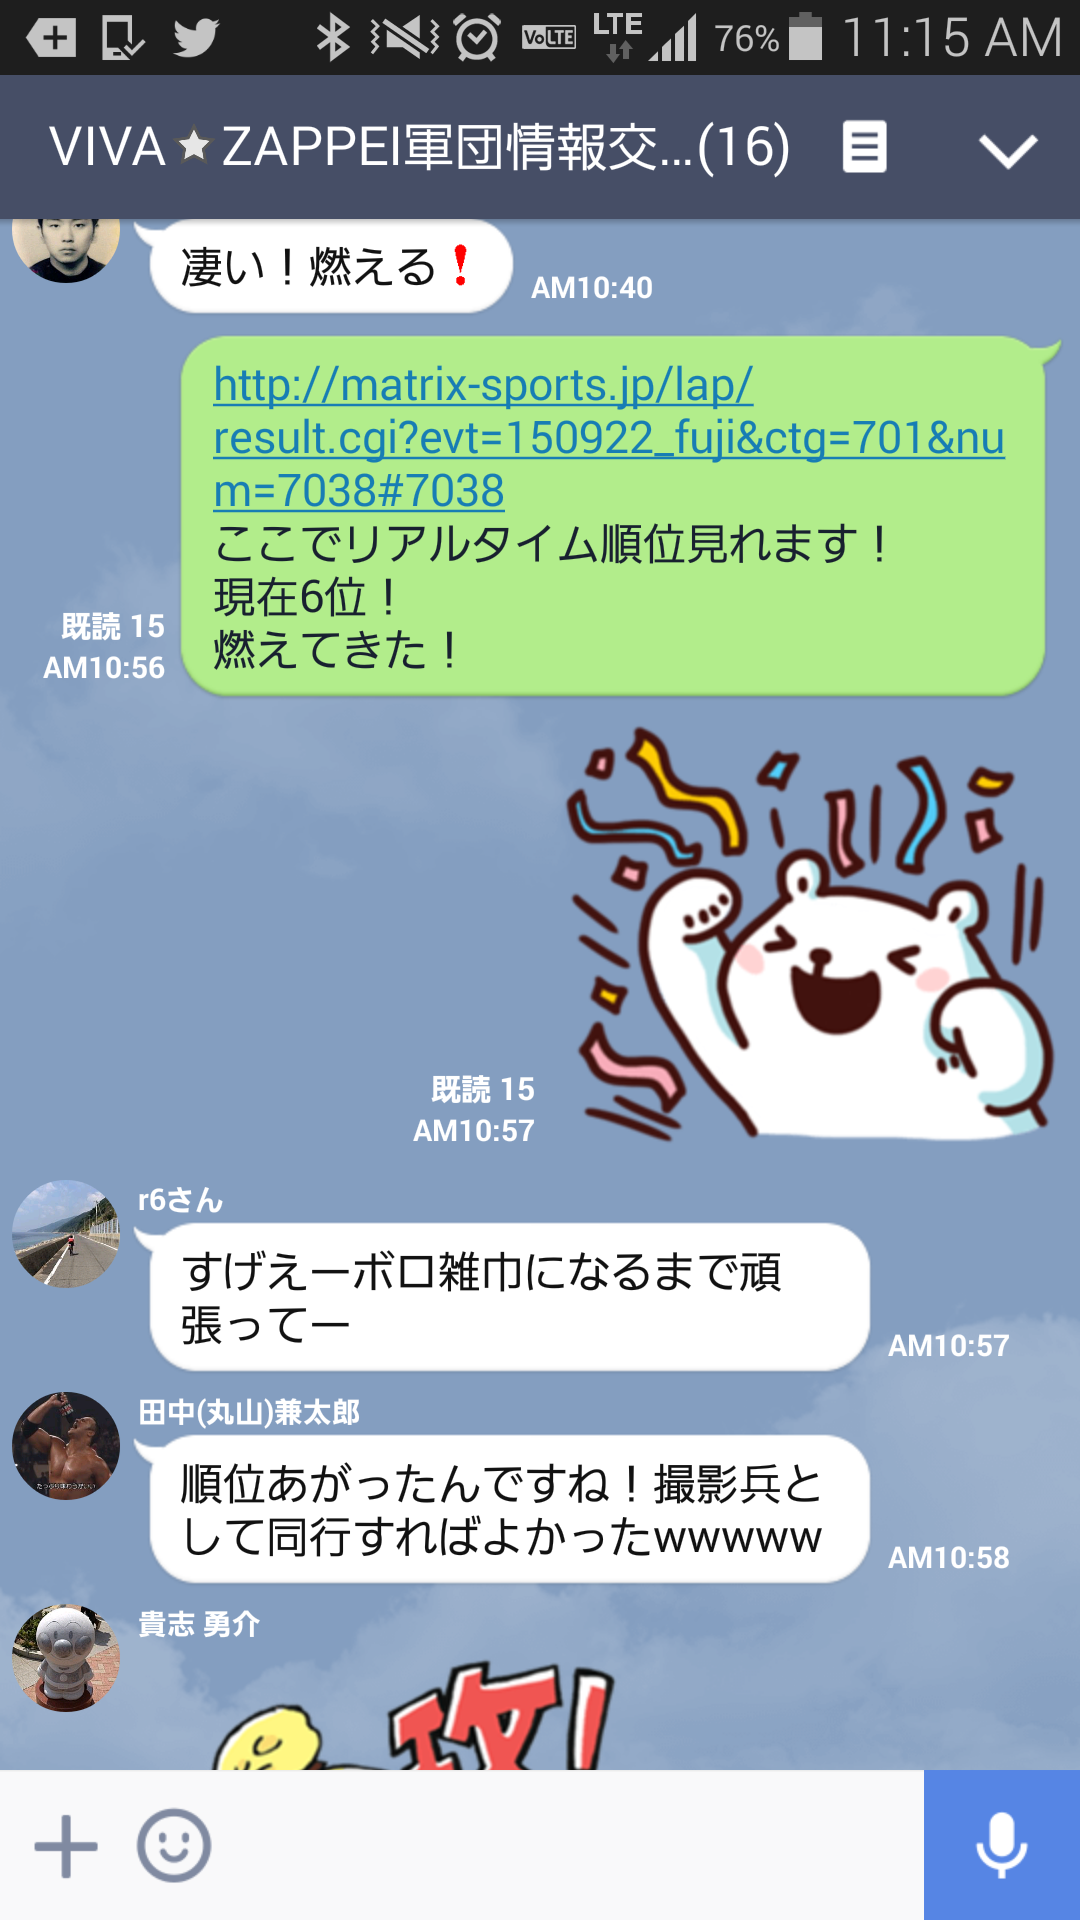 Screenshot_2015-09-24-11-15-56.png